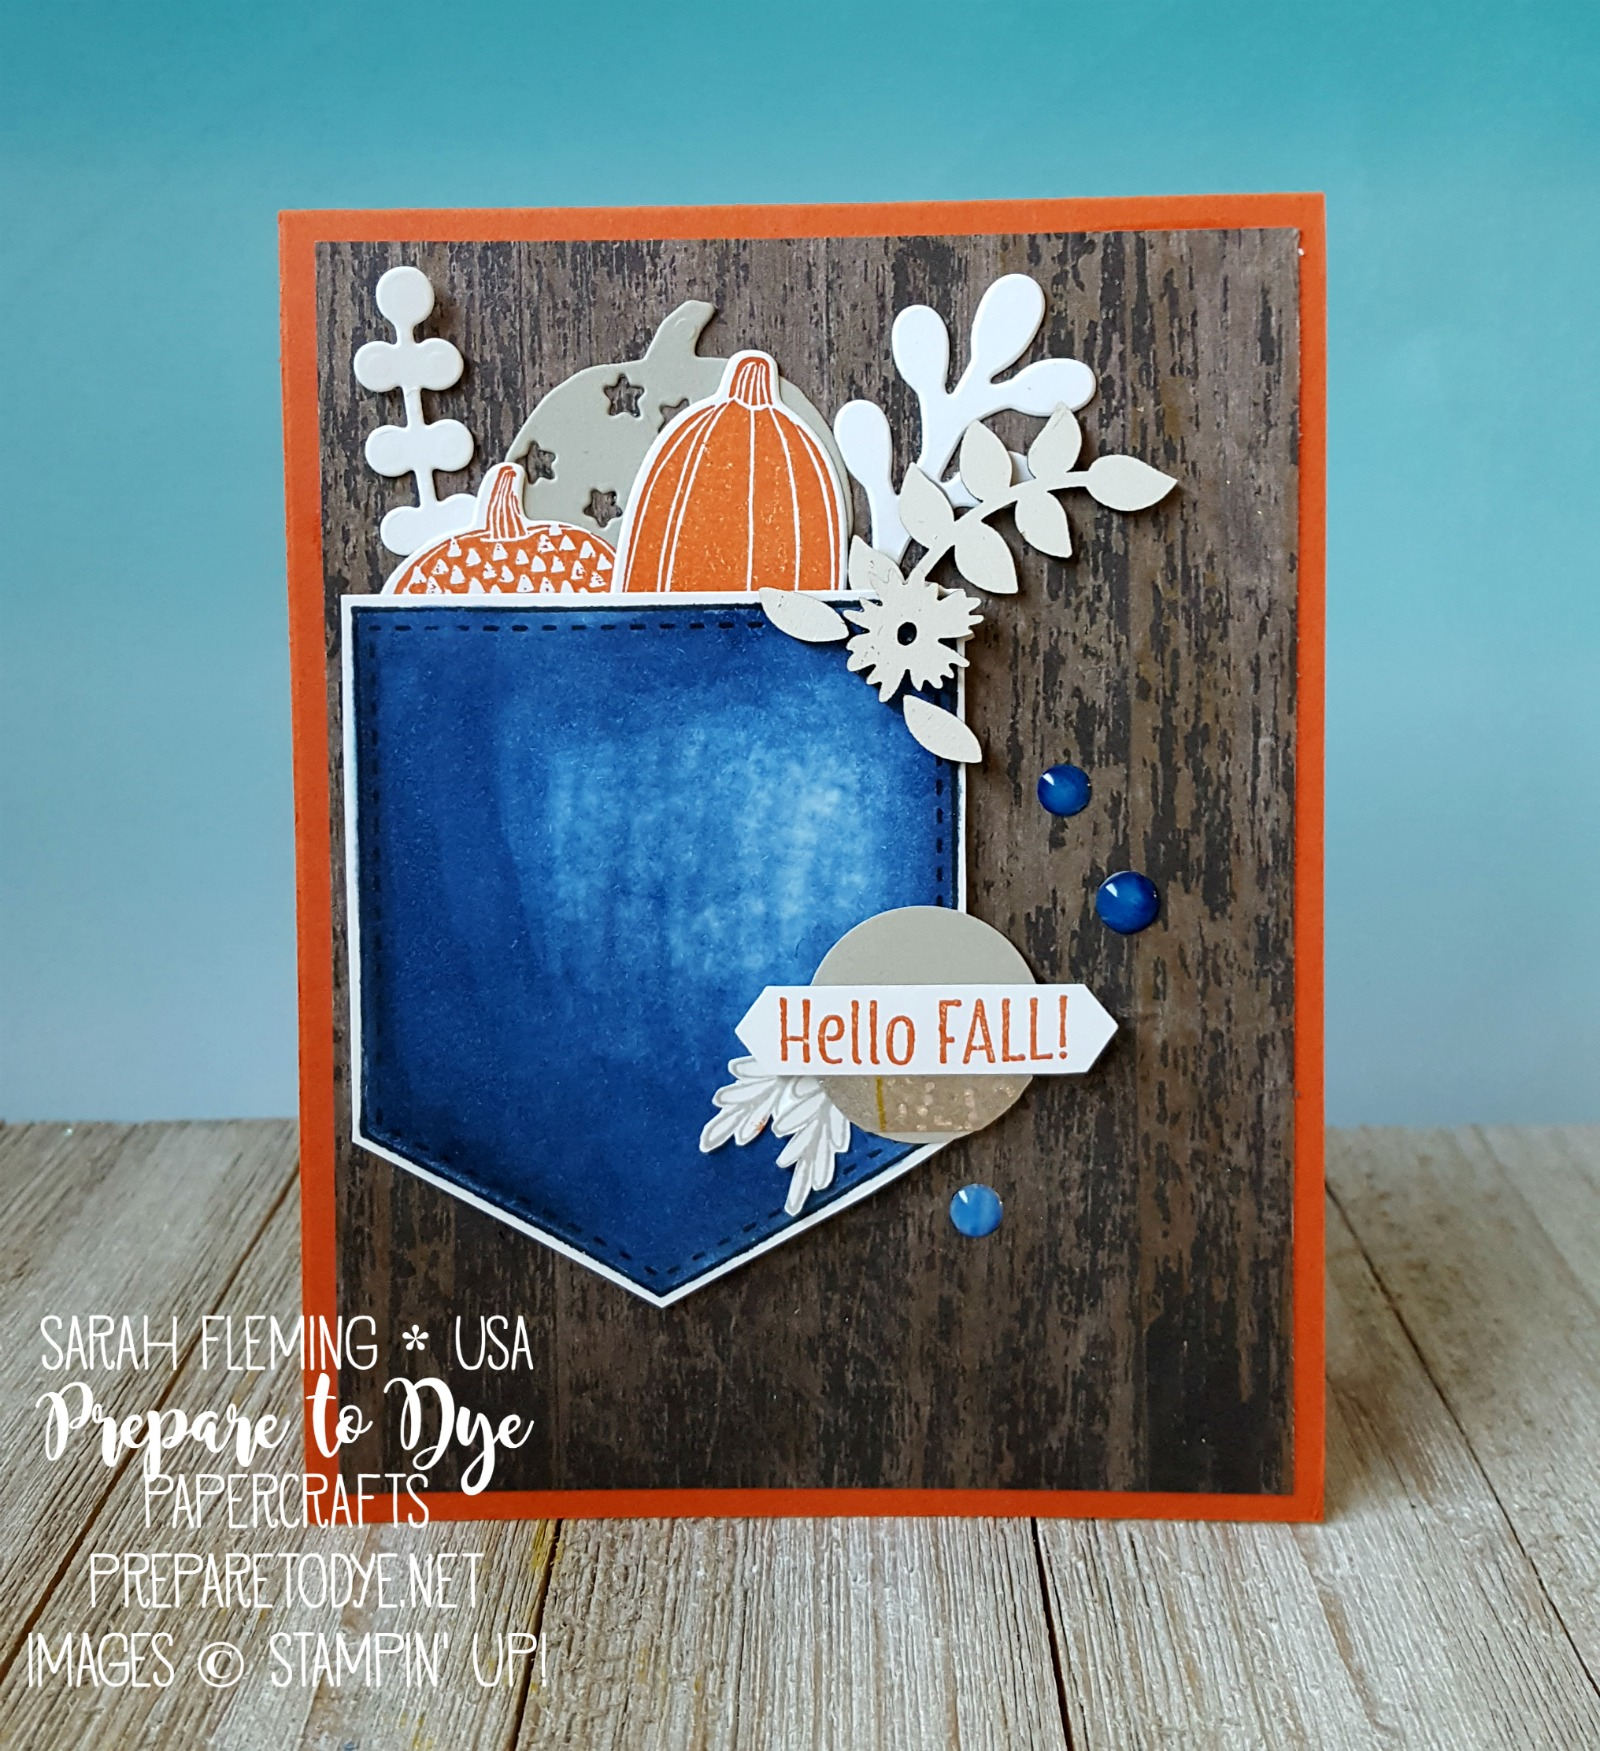 Stampin' Up! Pick a Pumpkin bundle, Pocketful of Sunshine bundle, Merry Cafe, Patterned Pumpkins thinlits, Stampin' Blends alcohol markers, Merry Cafe - Sarah Fleming - Prepare to Dye Papercrafts